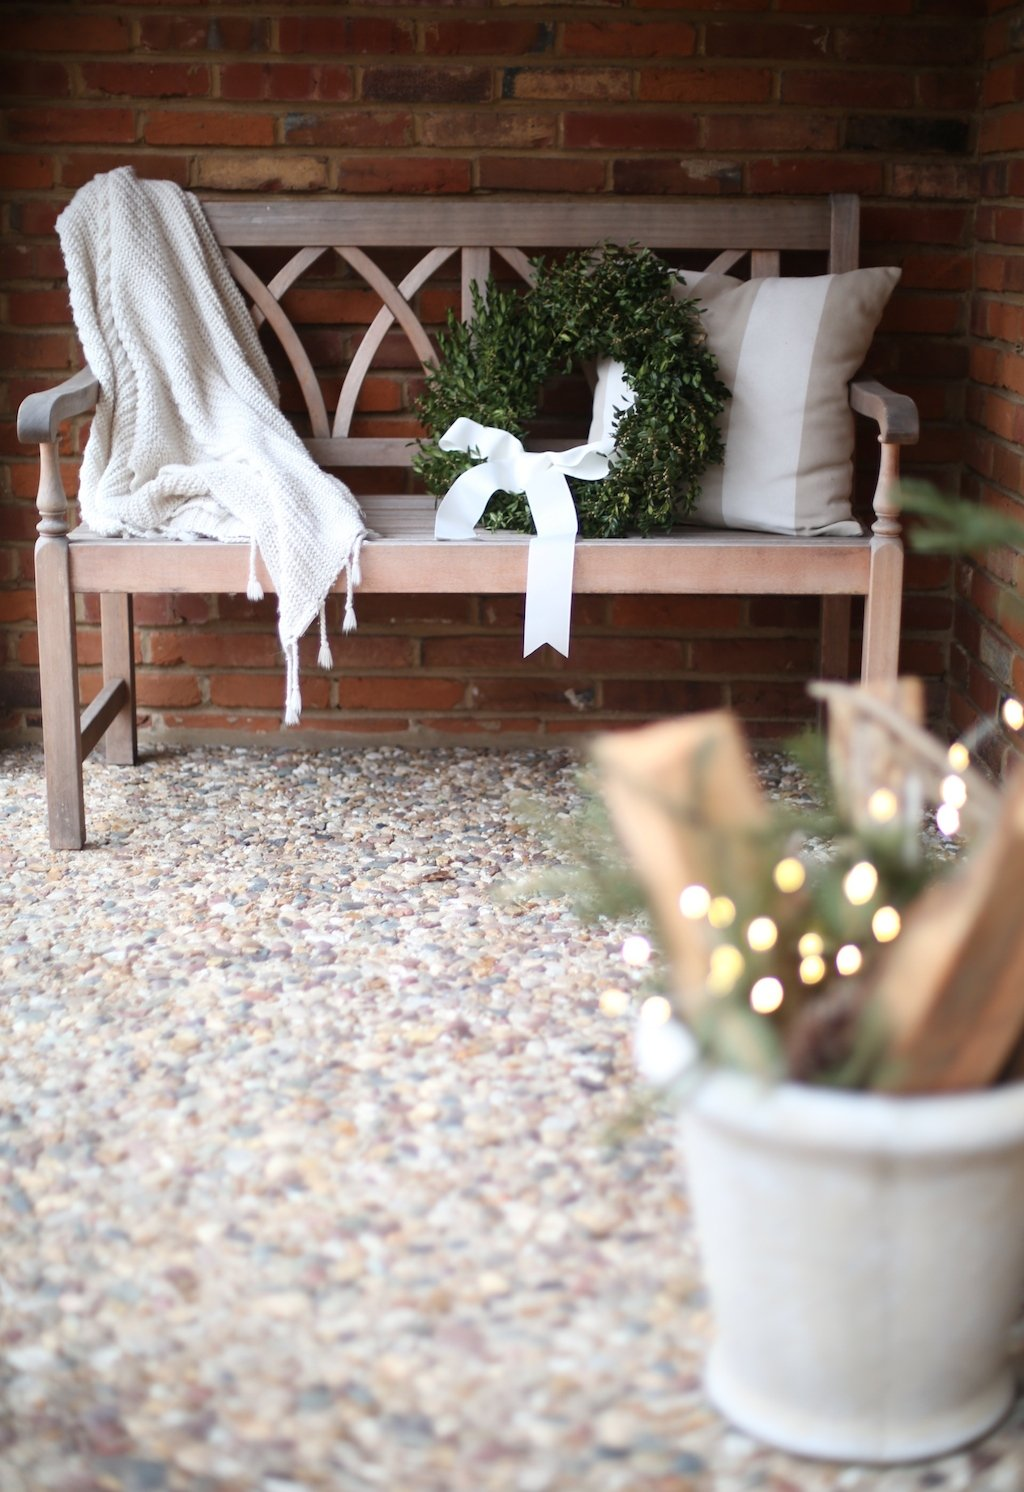 http://julieblanner.com/wp-content/uploads/2014/12/christmas-porch-decorating-ideas.jpg